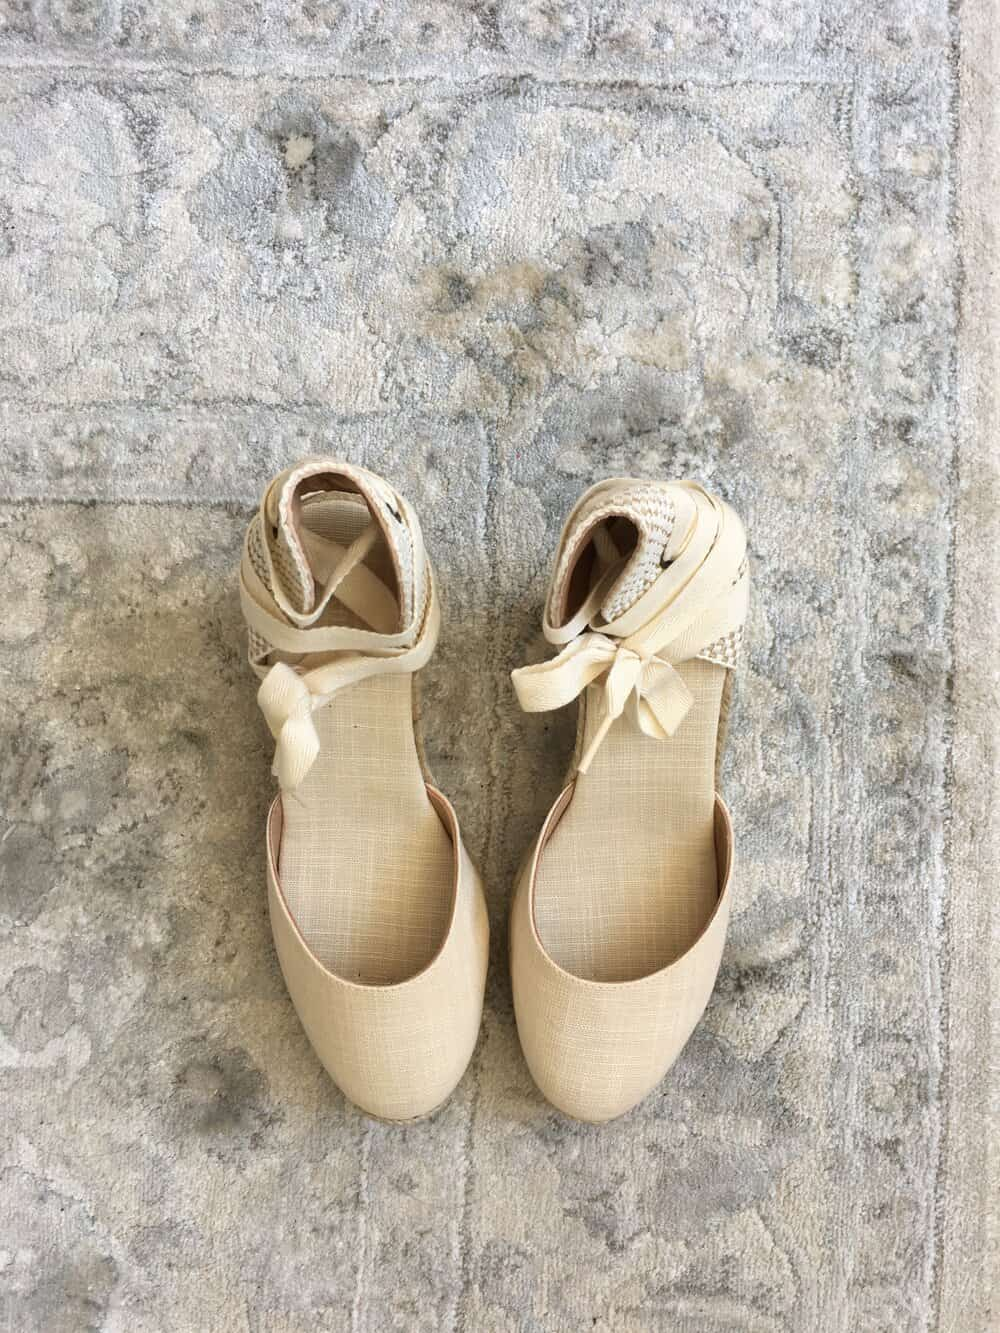 Summer Espadrilles available in multiple colors